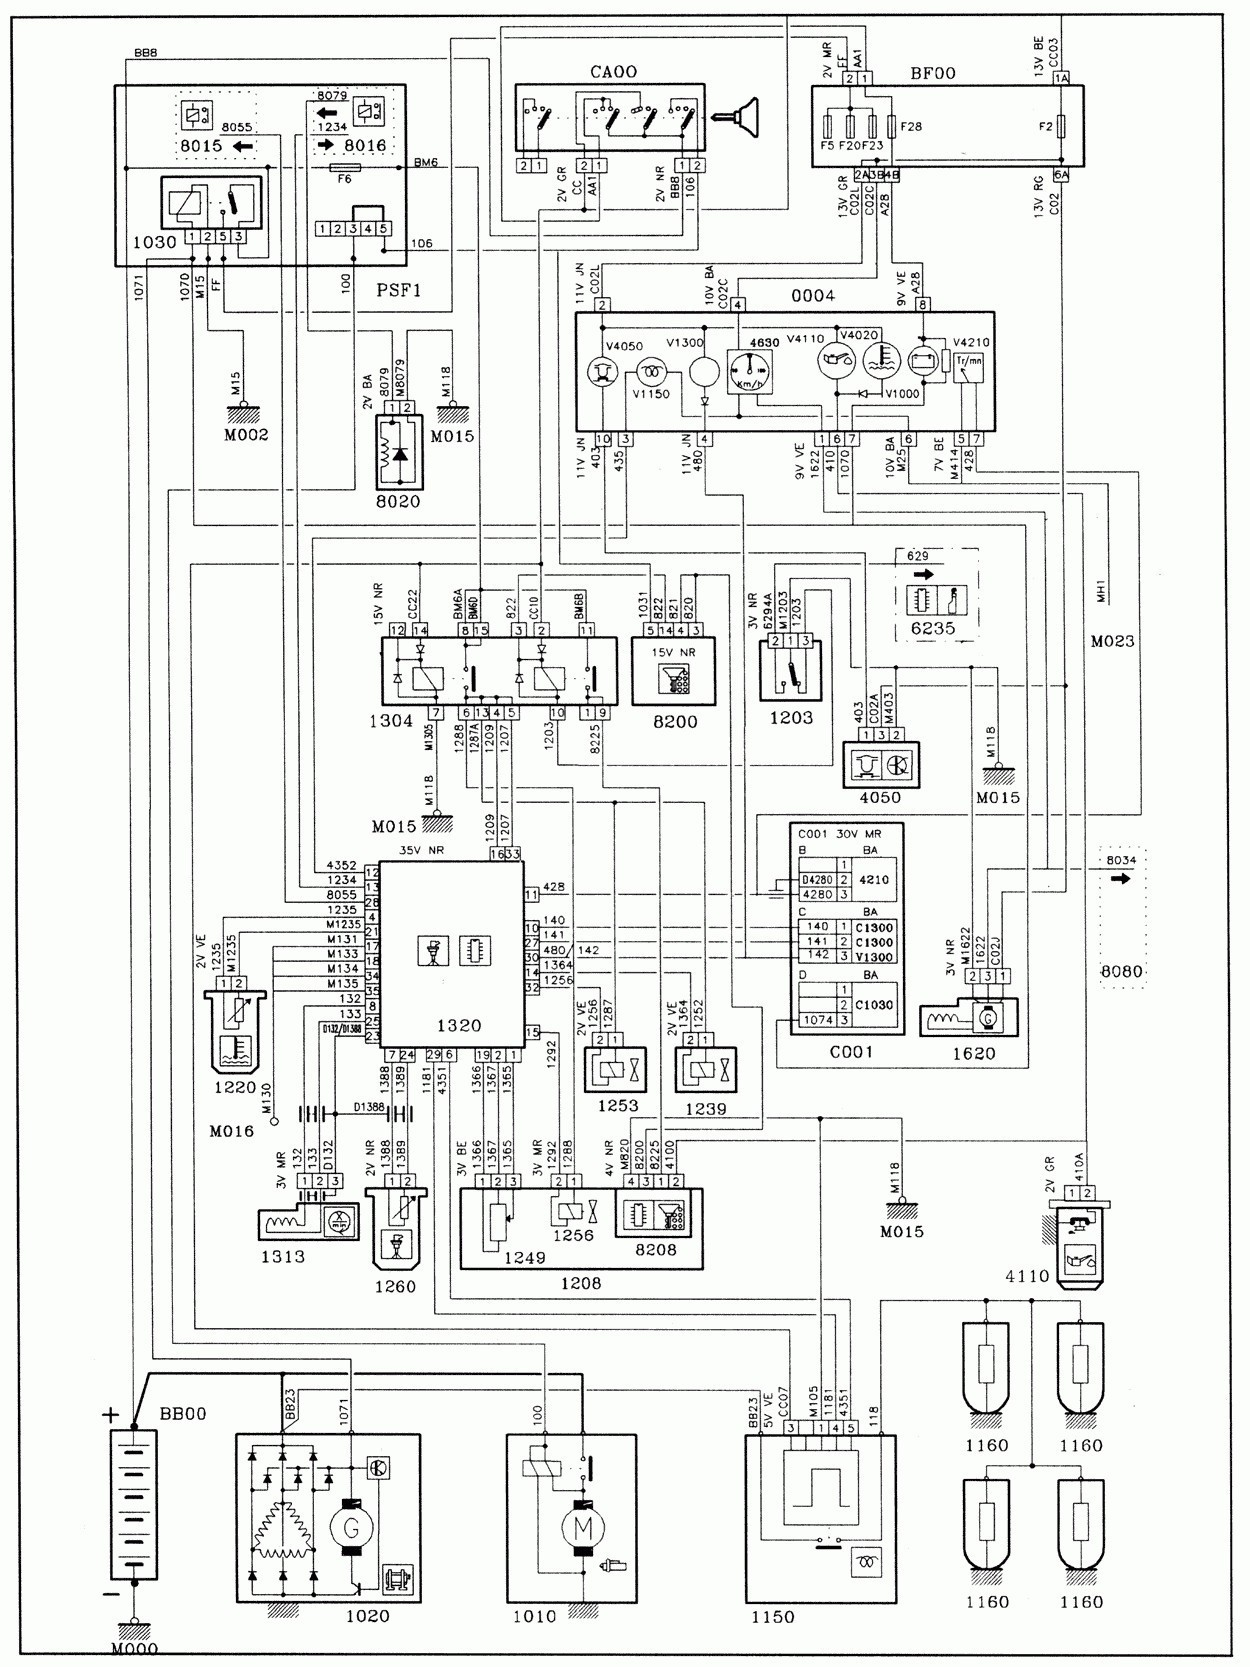 peugeot 307 hdi wiring diagram auto electrical wiring diagram peugeot 306 hdi wiring diagram [ 1250 x 1667 Pixel ]